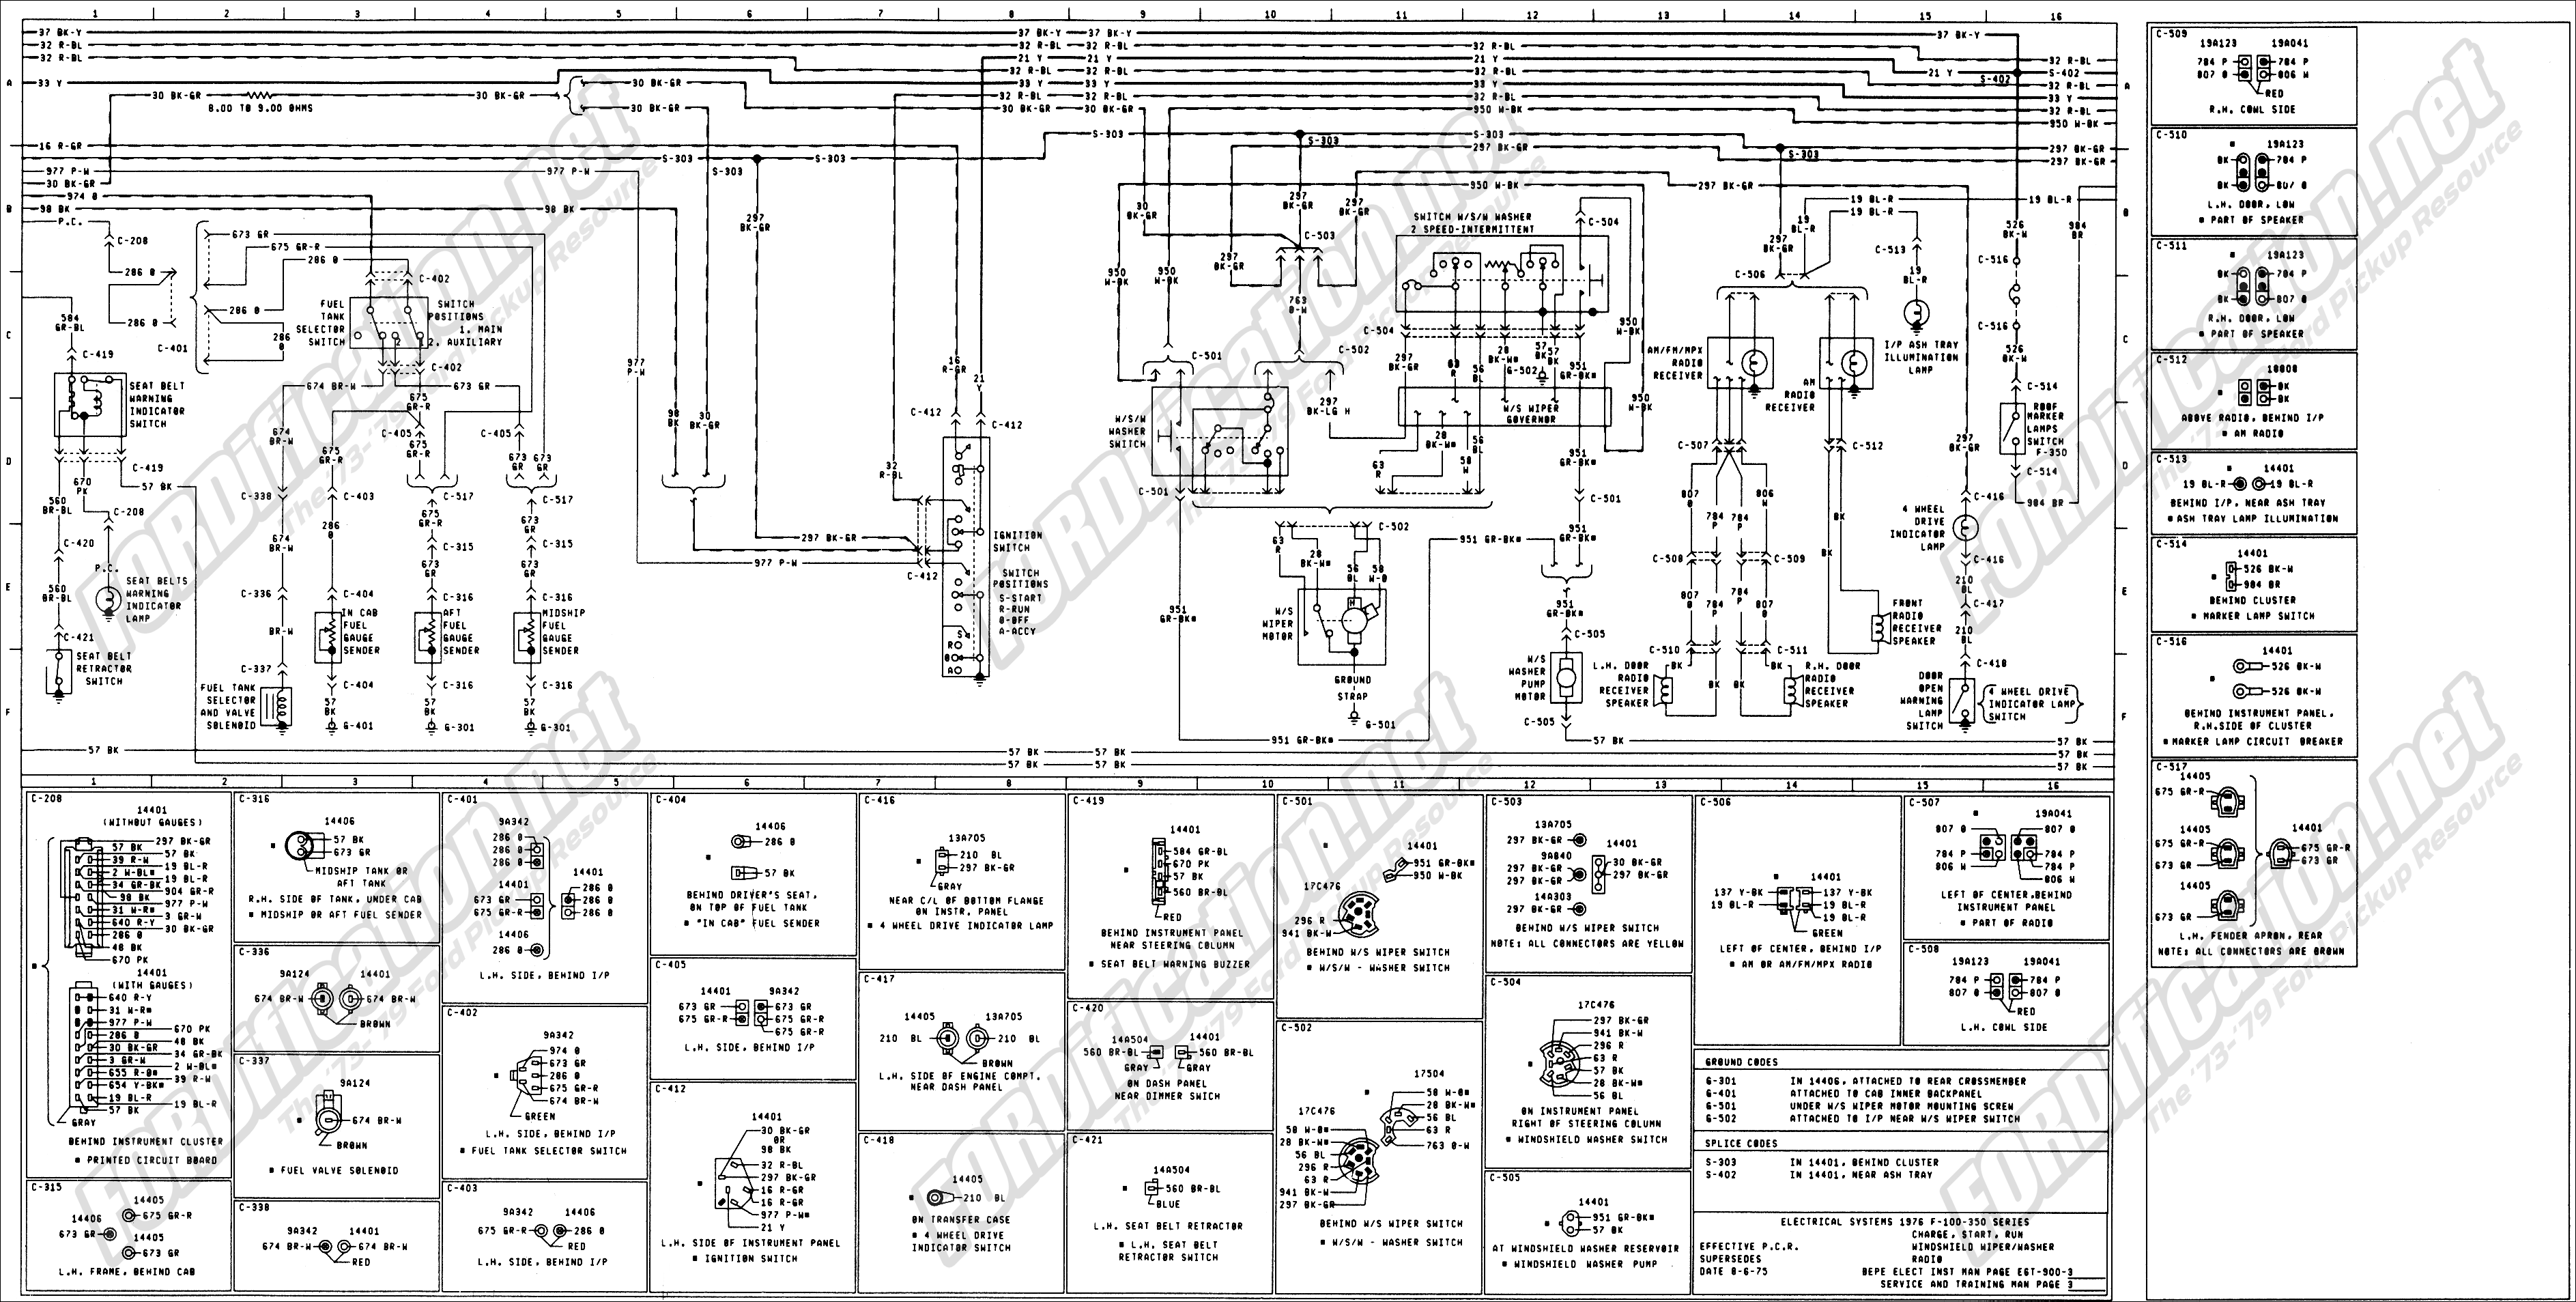 76 ford f250 wiring diagram wiring schematic diagram rh theodocle fion com  wiring diagram for 2002 ford f350 wiring diagram for 2002 ford f350